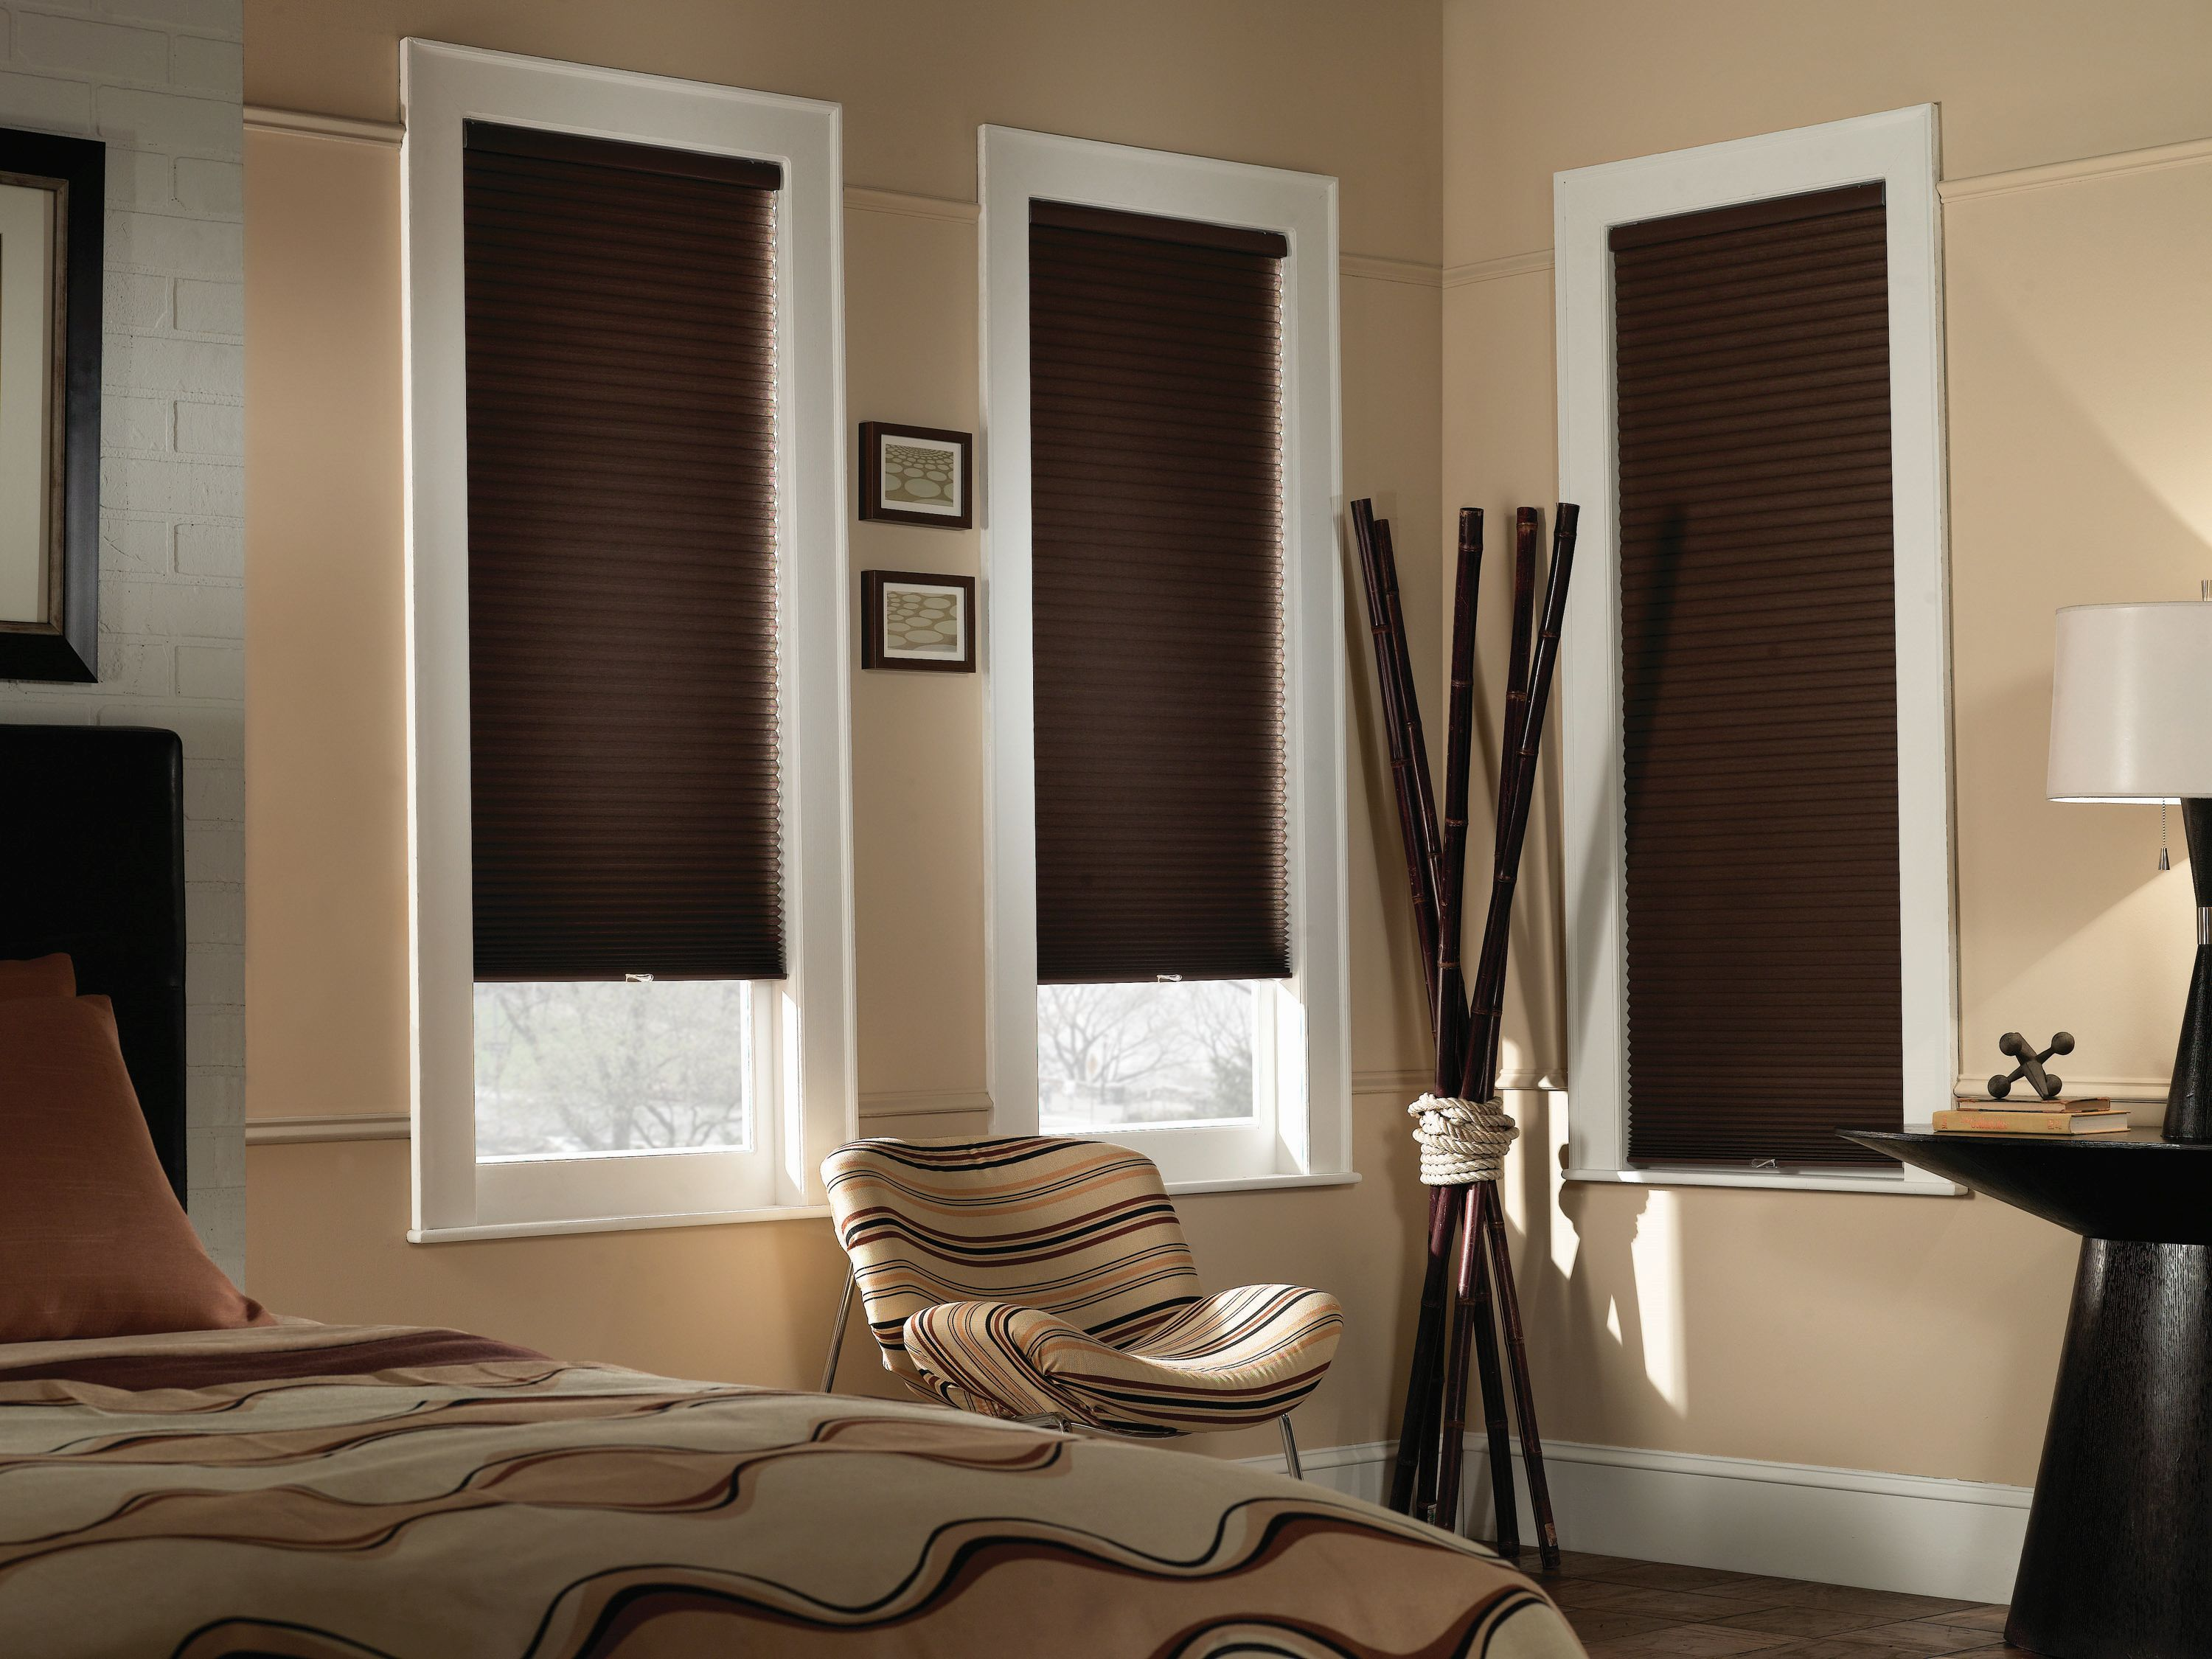 blackout blinds cordless cellular shade - blinds.com economy 1/2 XNOBAYV